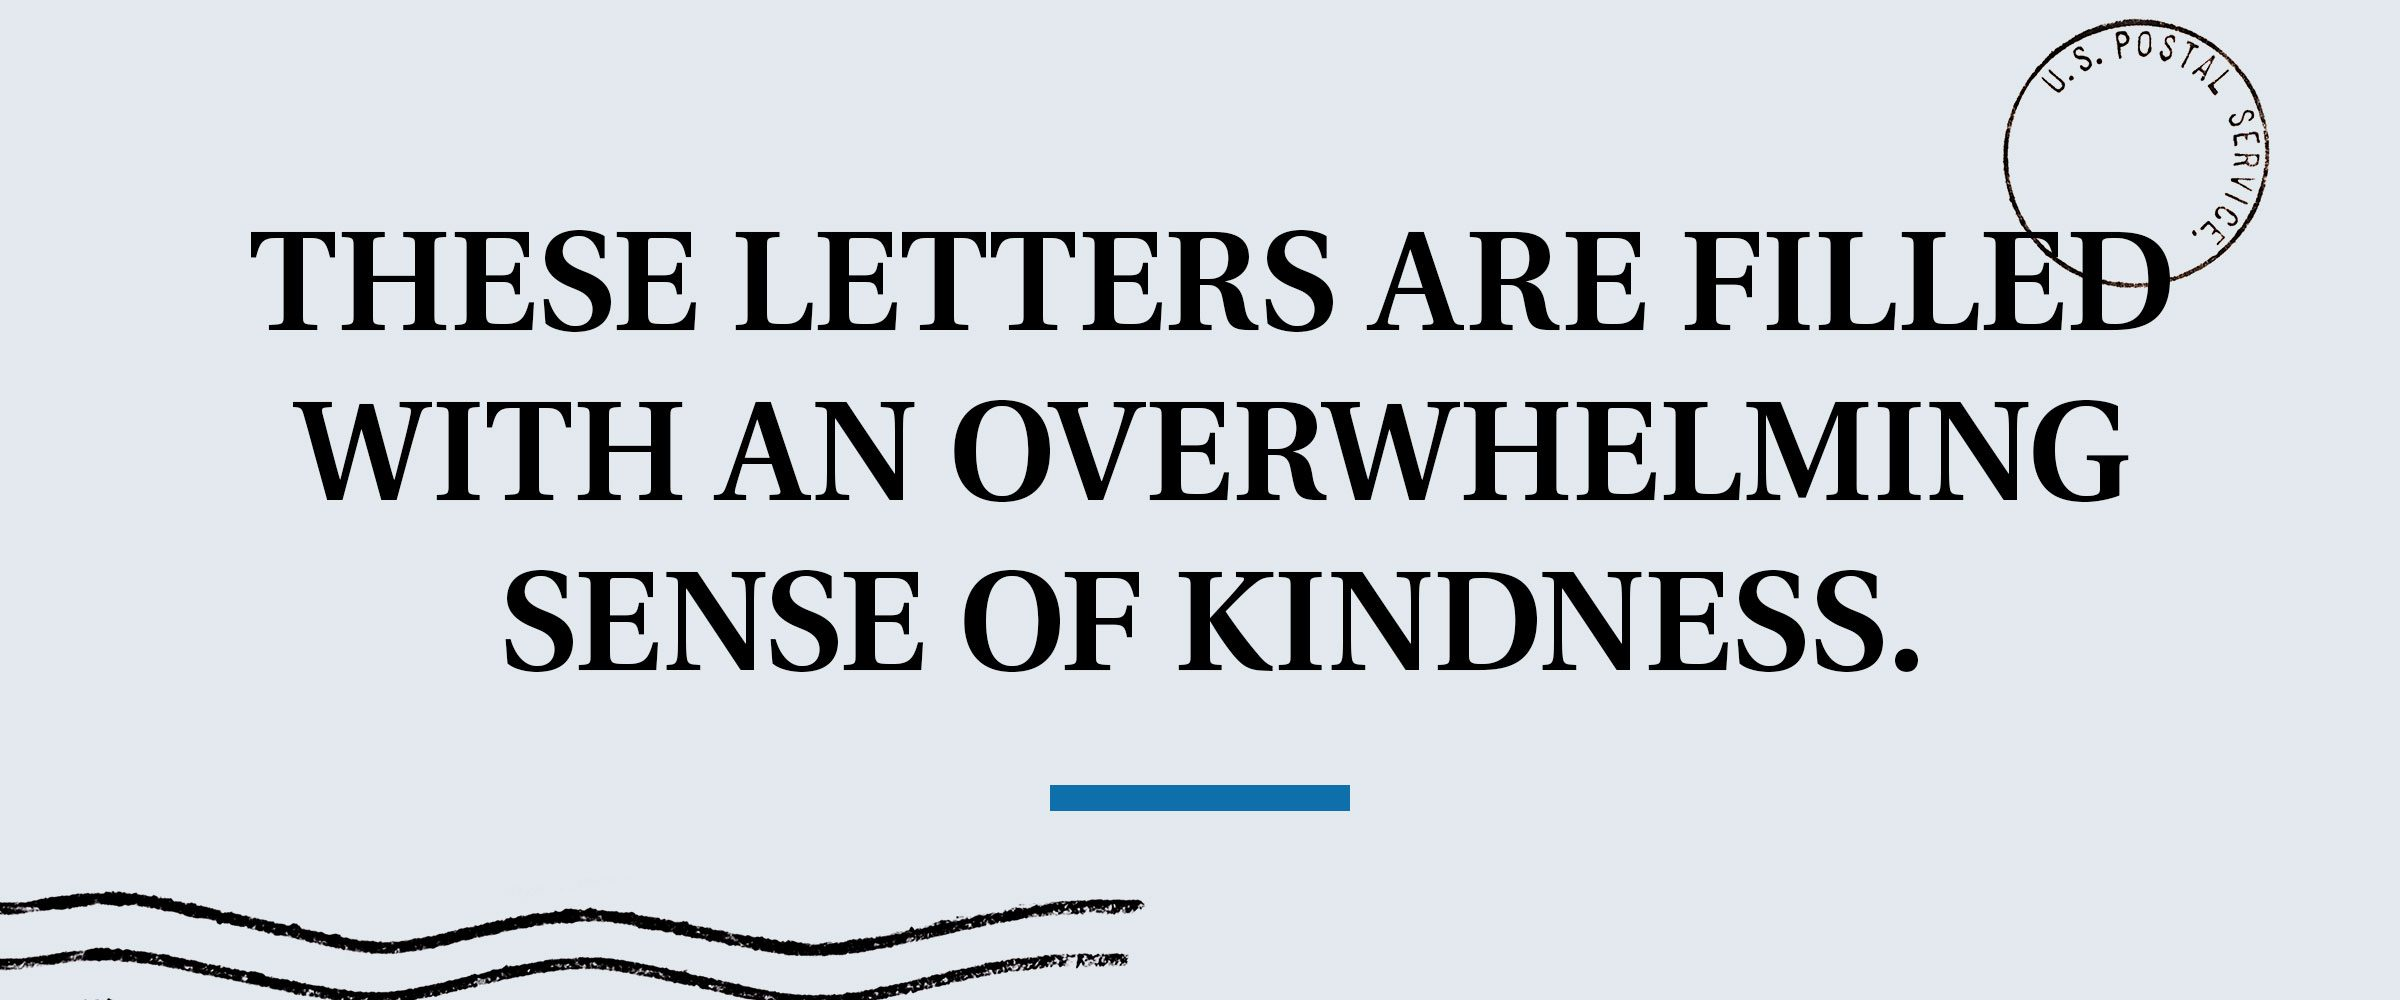 pull quote text: These letters are filled with an overwhelming sense of kindness.